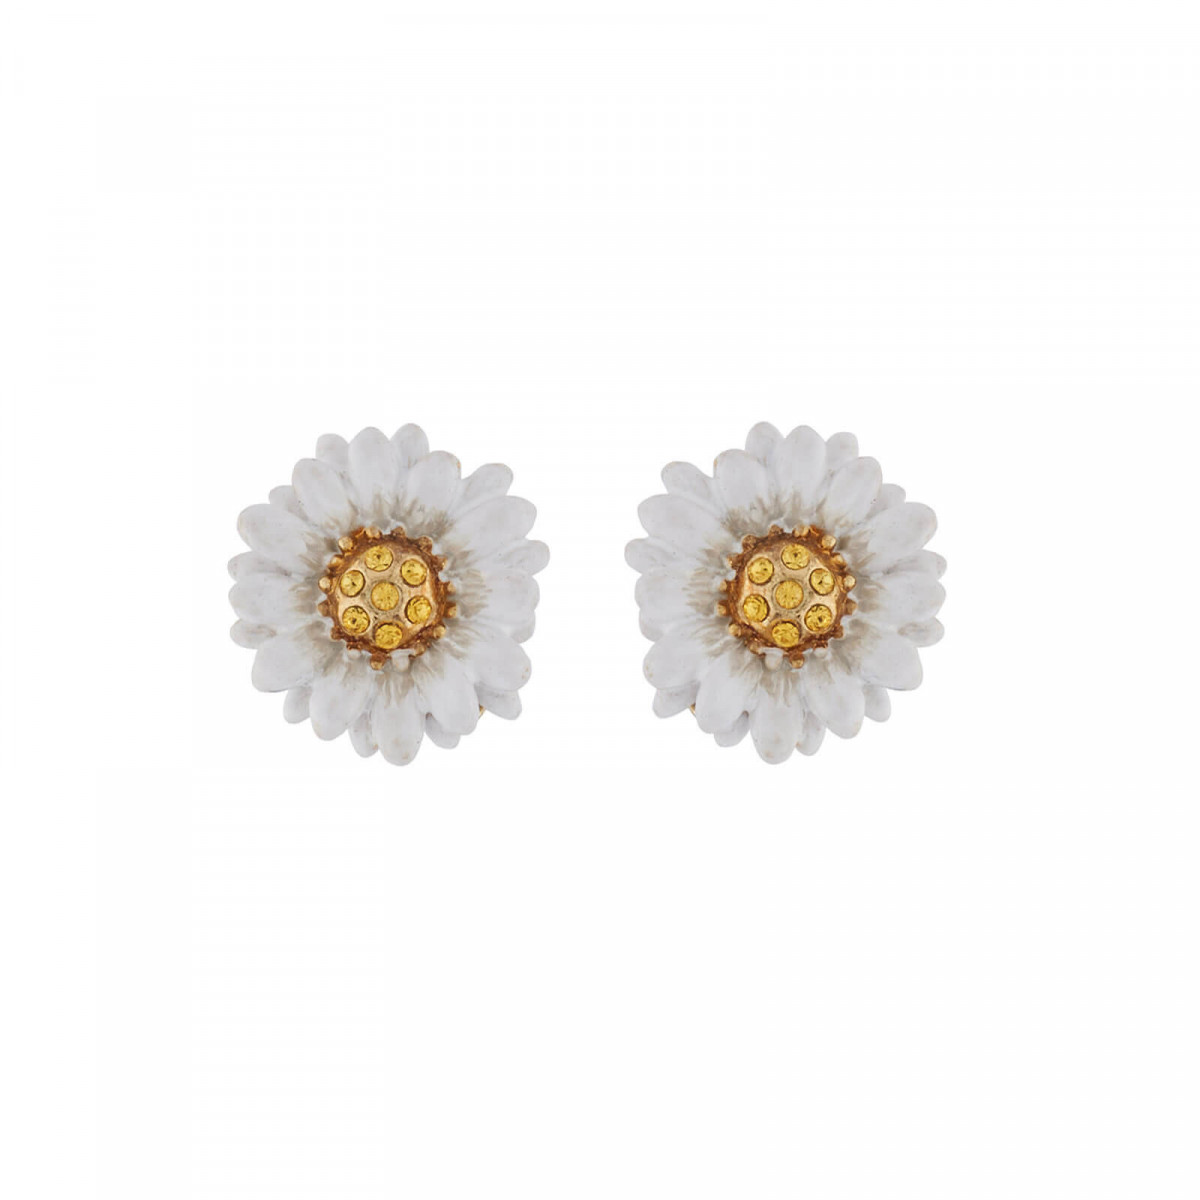 These Daisy Shaped Dormeuses Earrings For Women Are Made In 14 Carat Gold Plated Br And Hand Enameled Respecting Les Néréides Paris Pure Creation